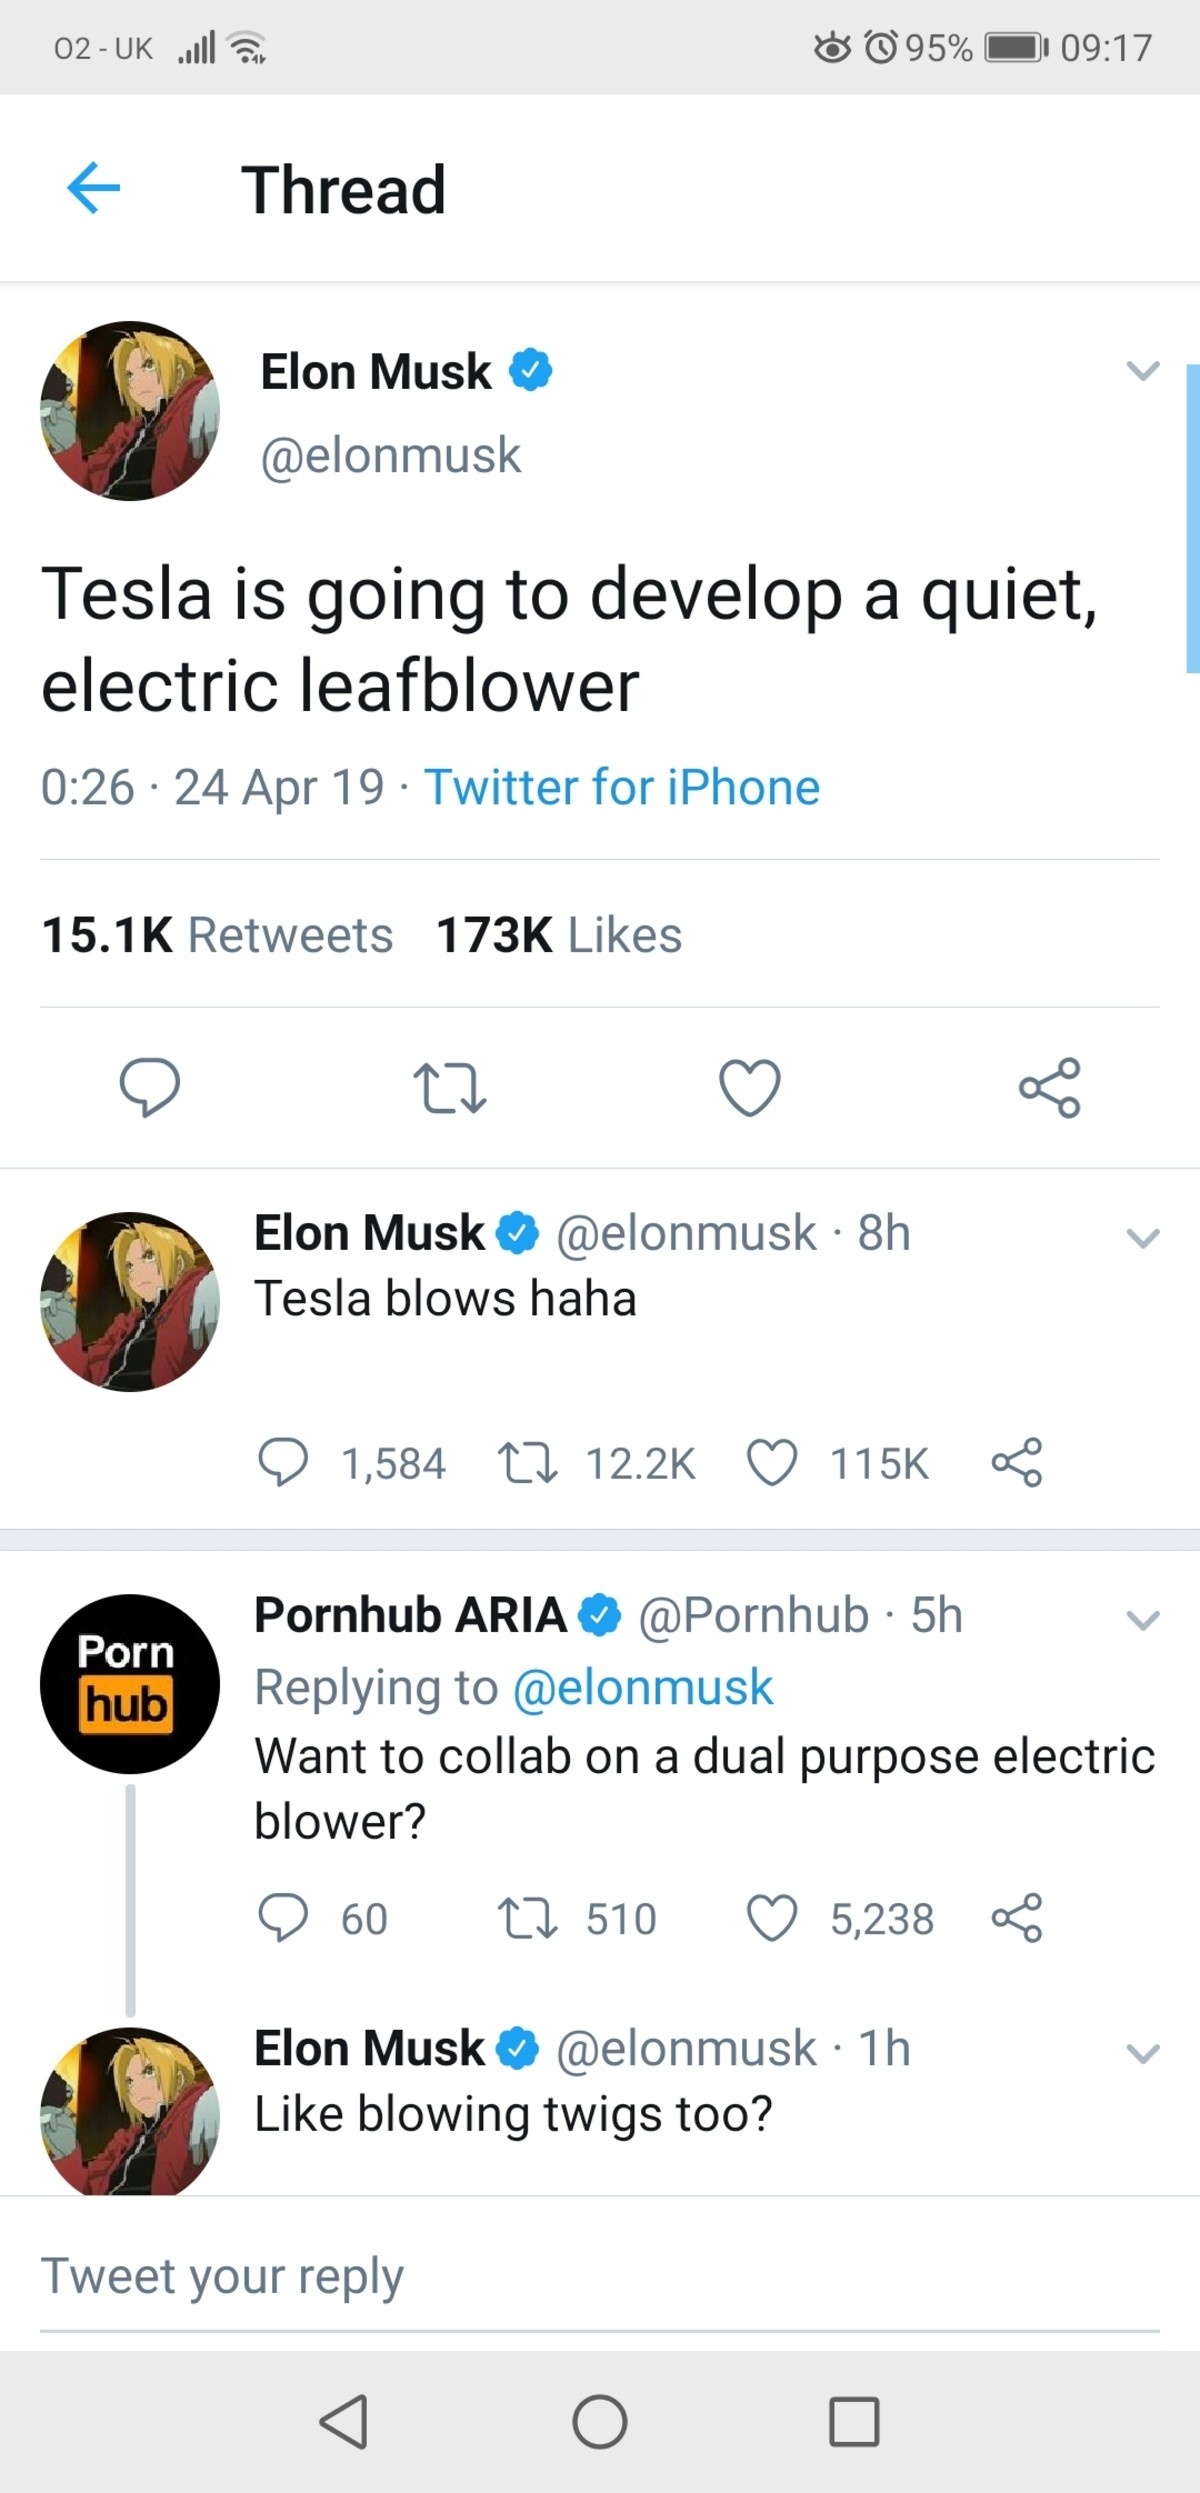 Lord E Musk. .. A bundle of twigs perhaps.